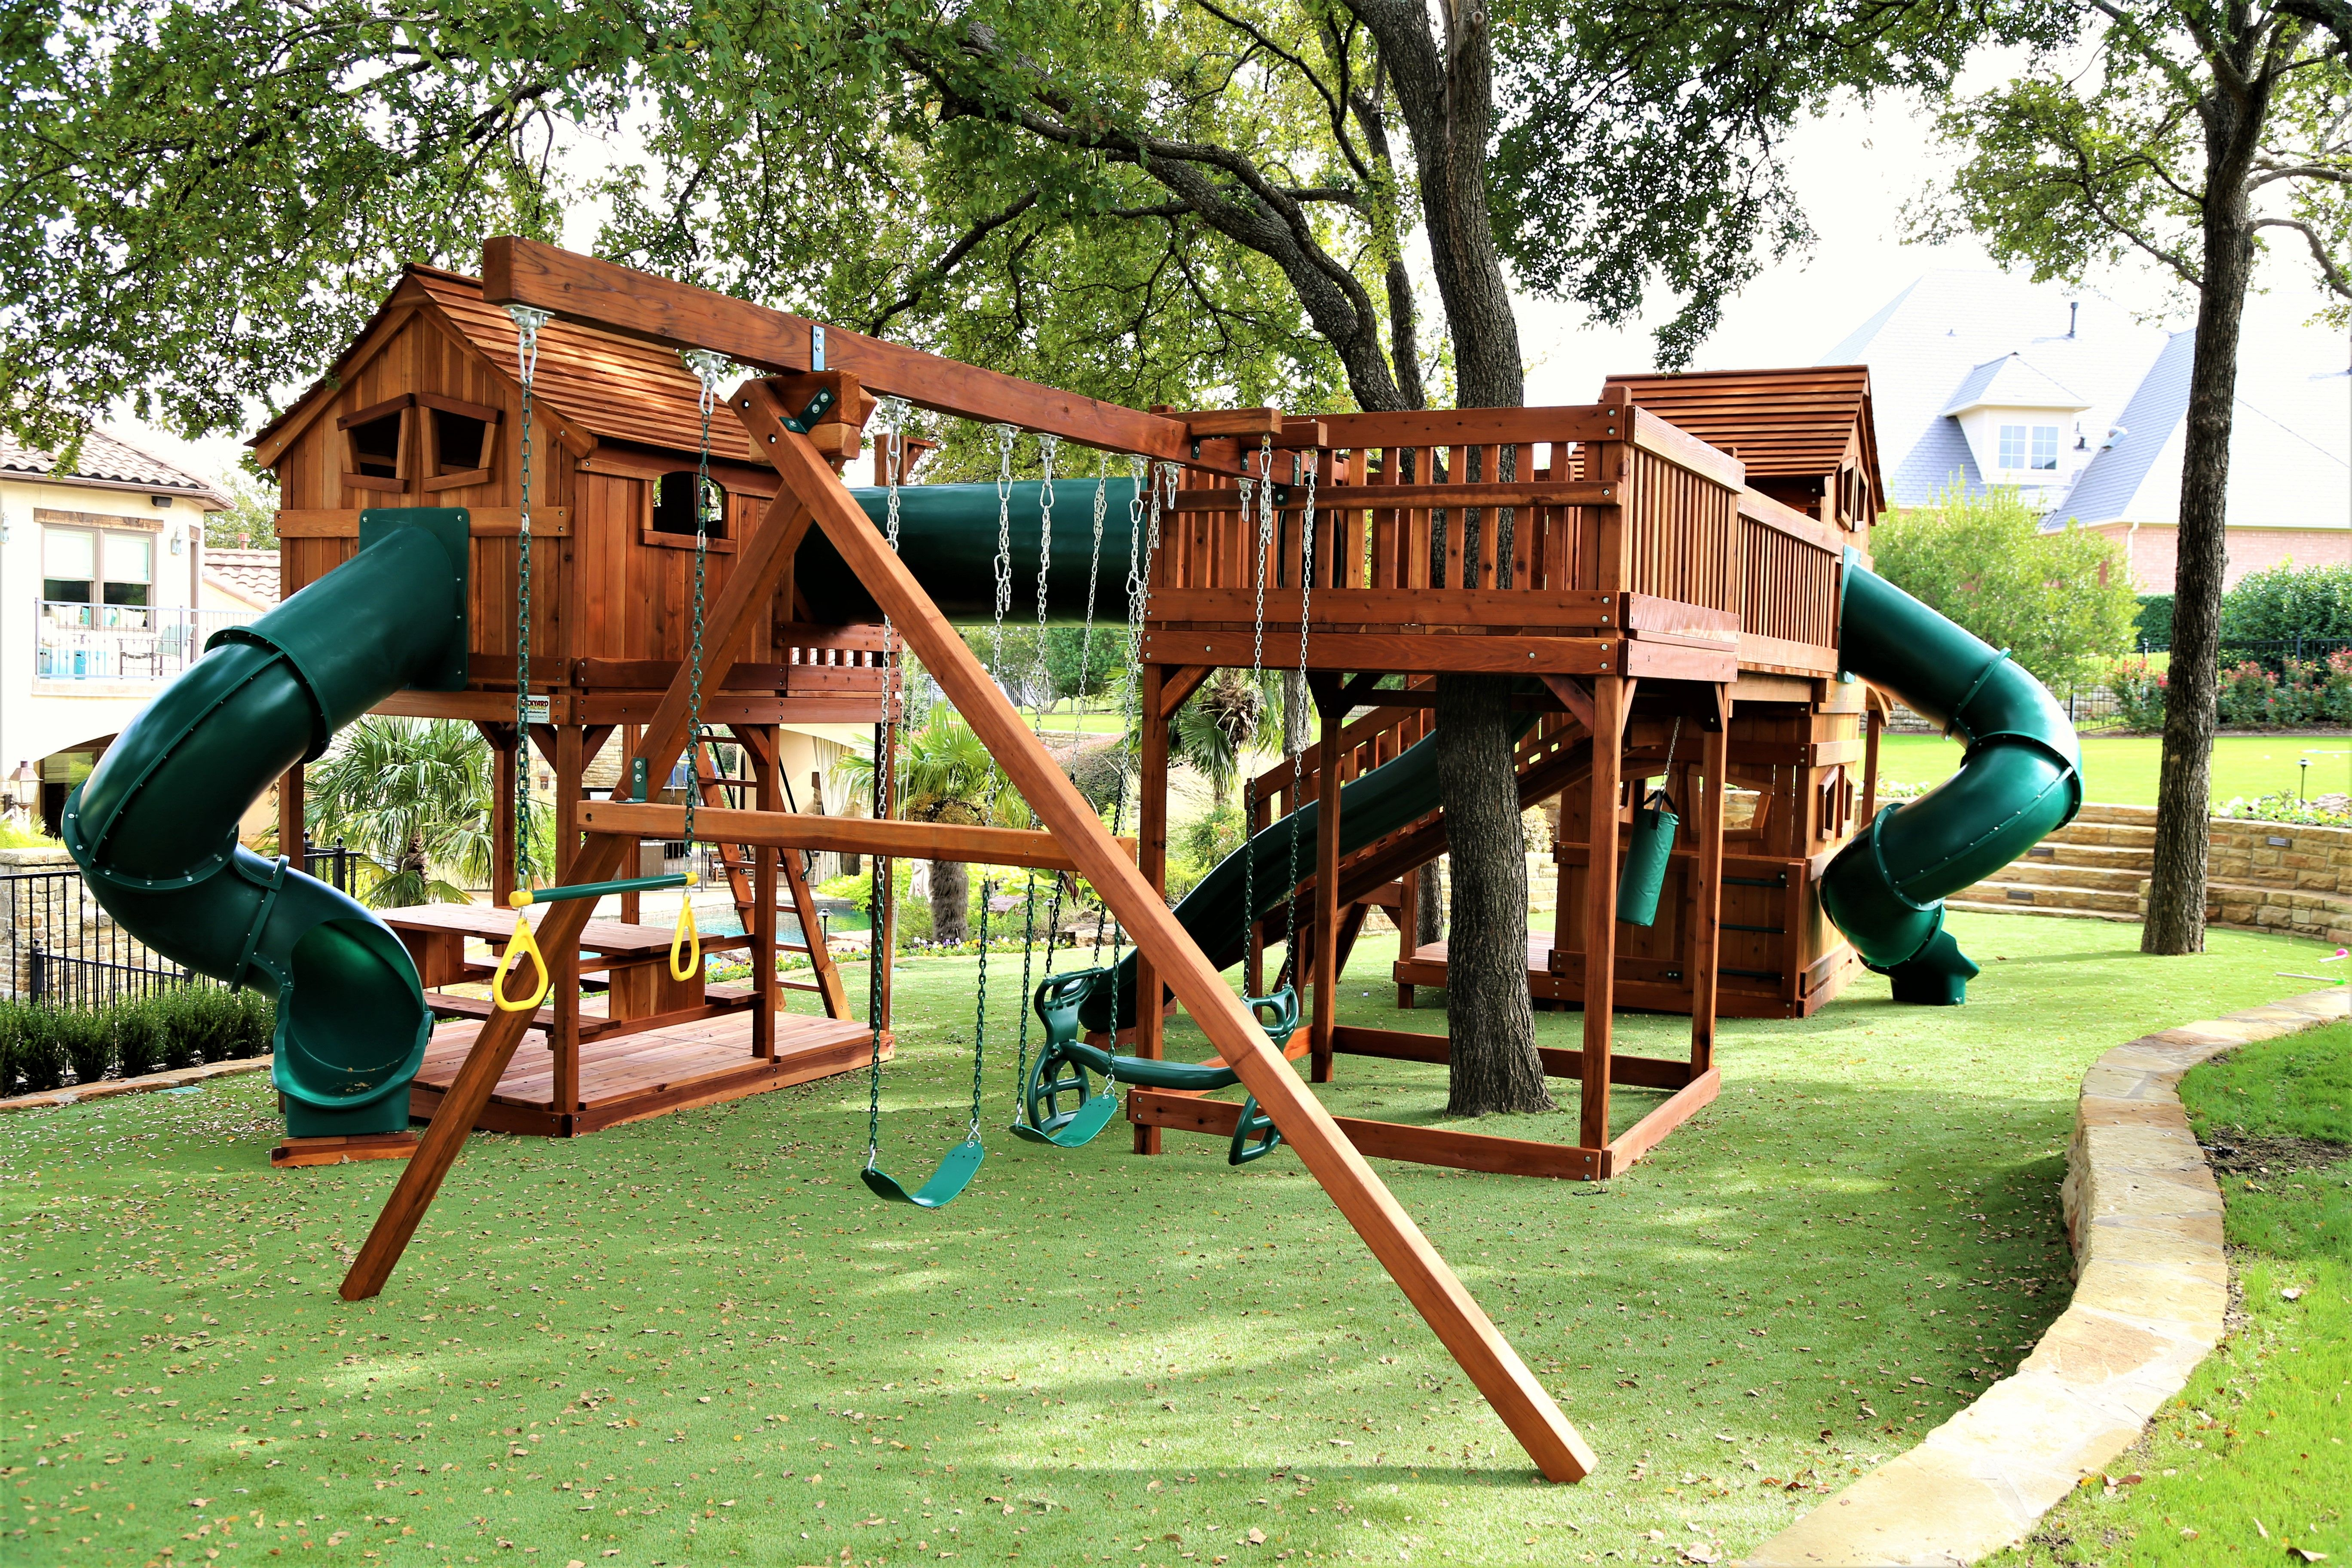 redwood custom play set shown w 5 slides crawl tube and 2 fort